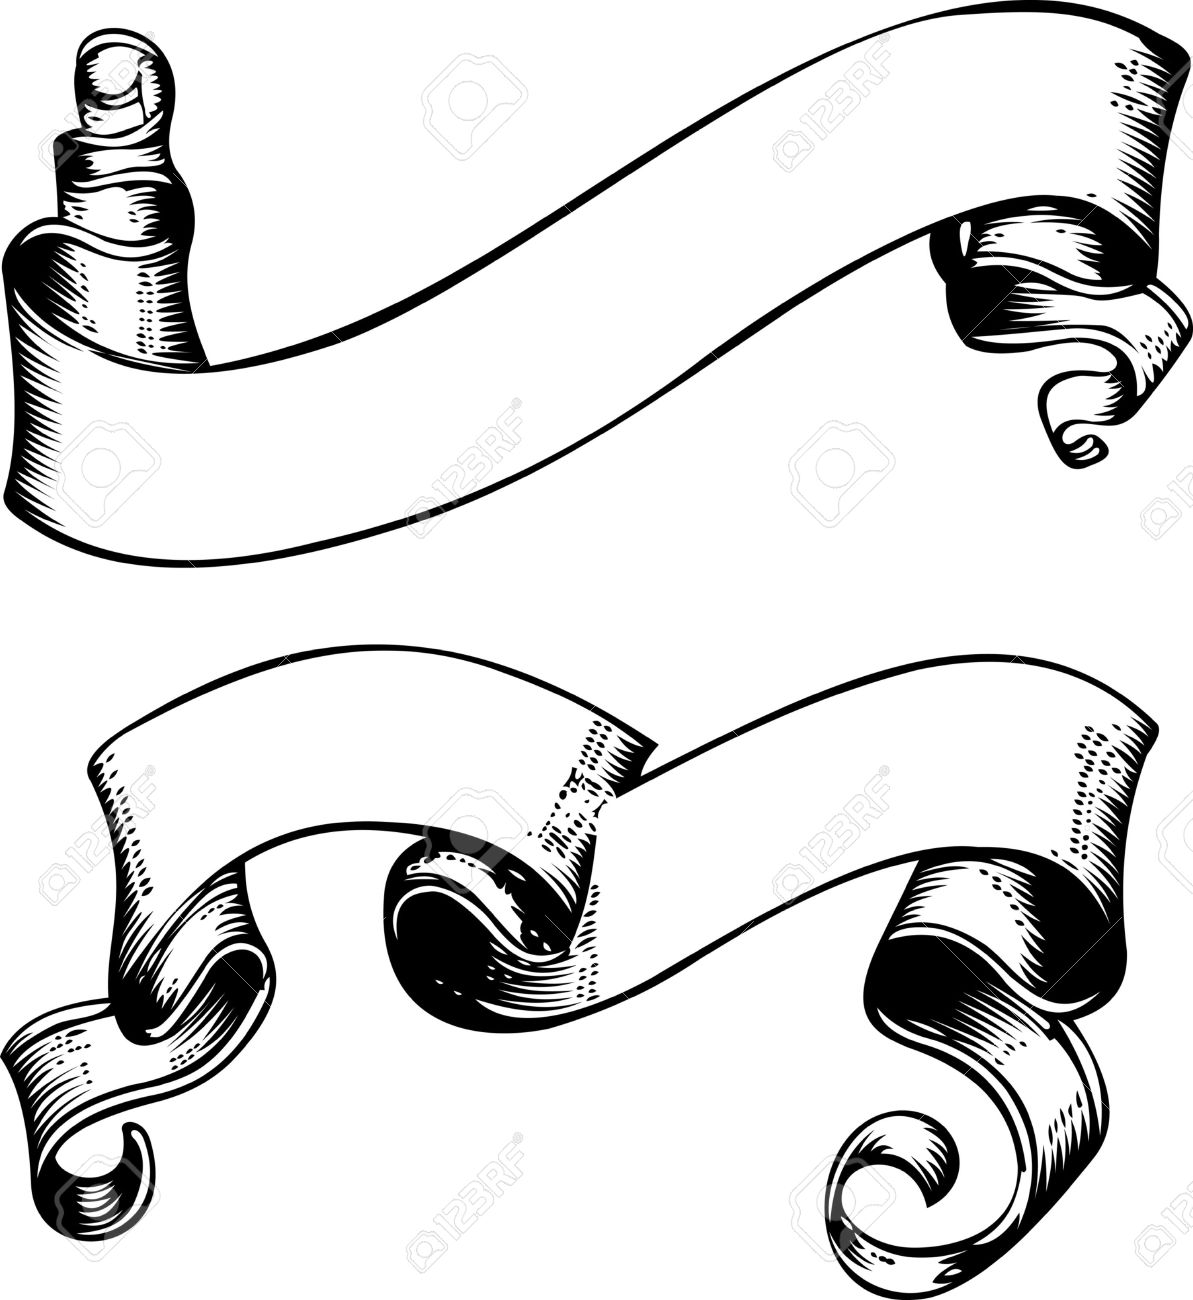 1193x1300 8878199 Two One Color Old Grunge Engraved Banners Stock Vector